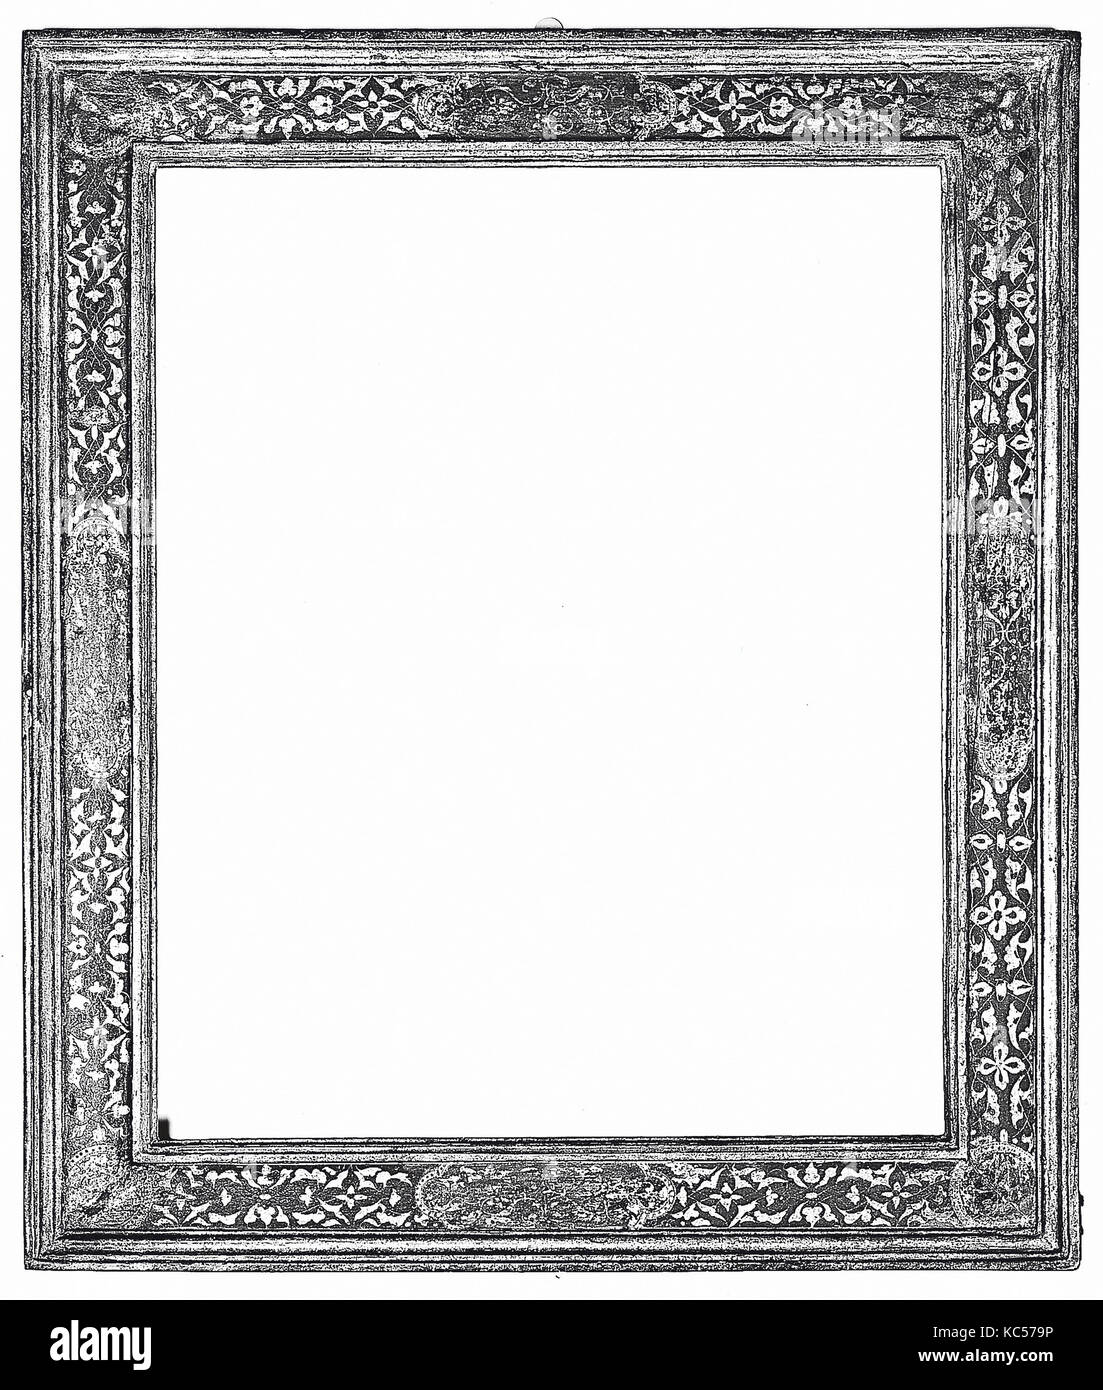 Cassetta frame early 16th century italian venice gilt pine 87 cassetta frame early 16th century italian venice gilt pine 87 x 734 681 x 548 706 x 574 cm frames jeuxipadfo Image collections